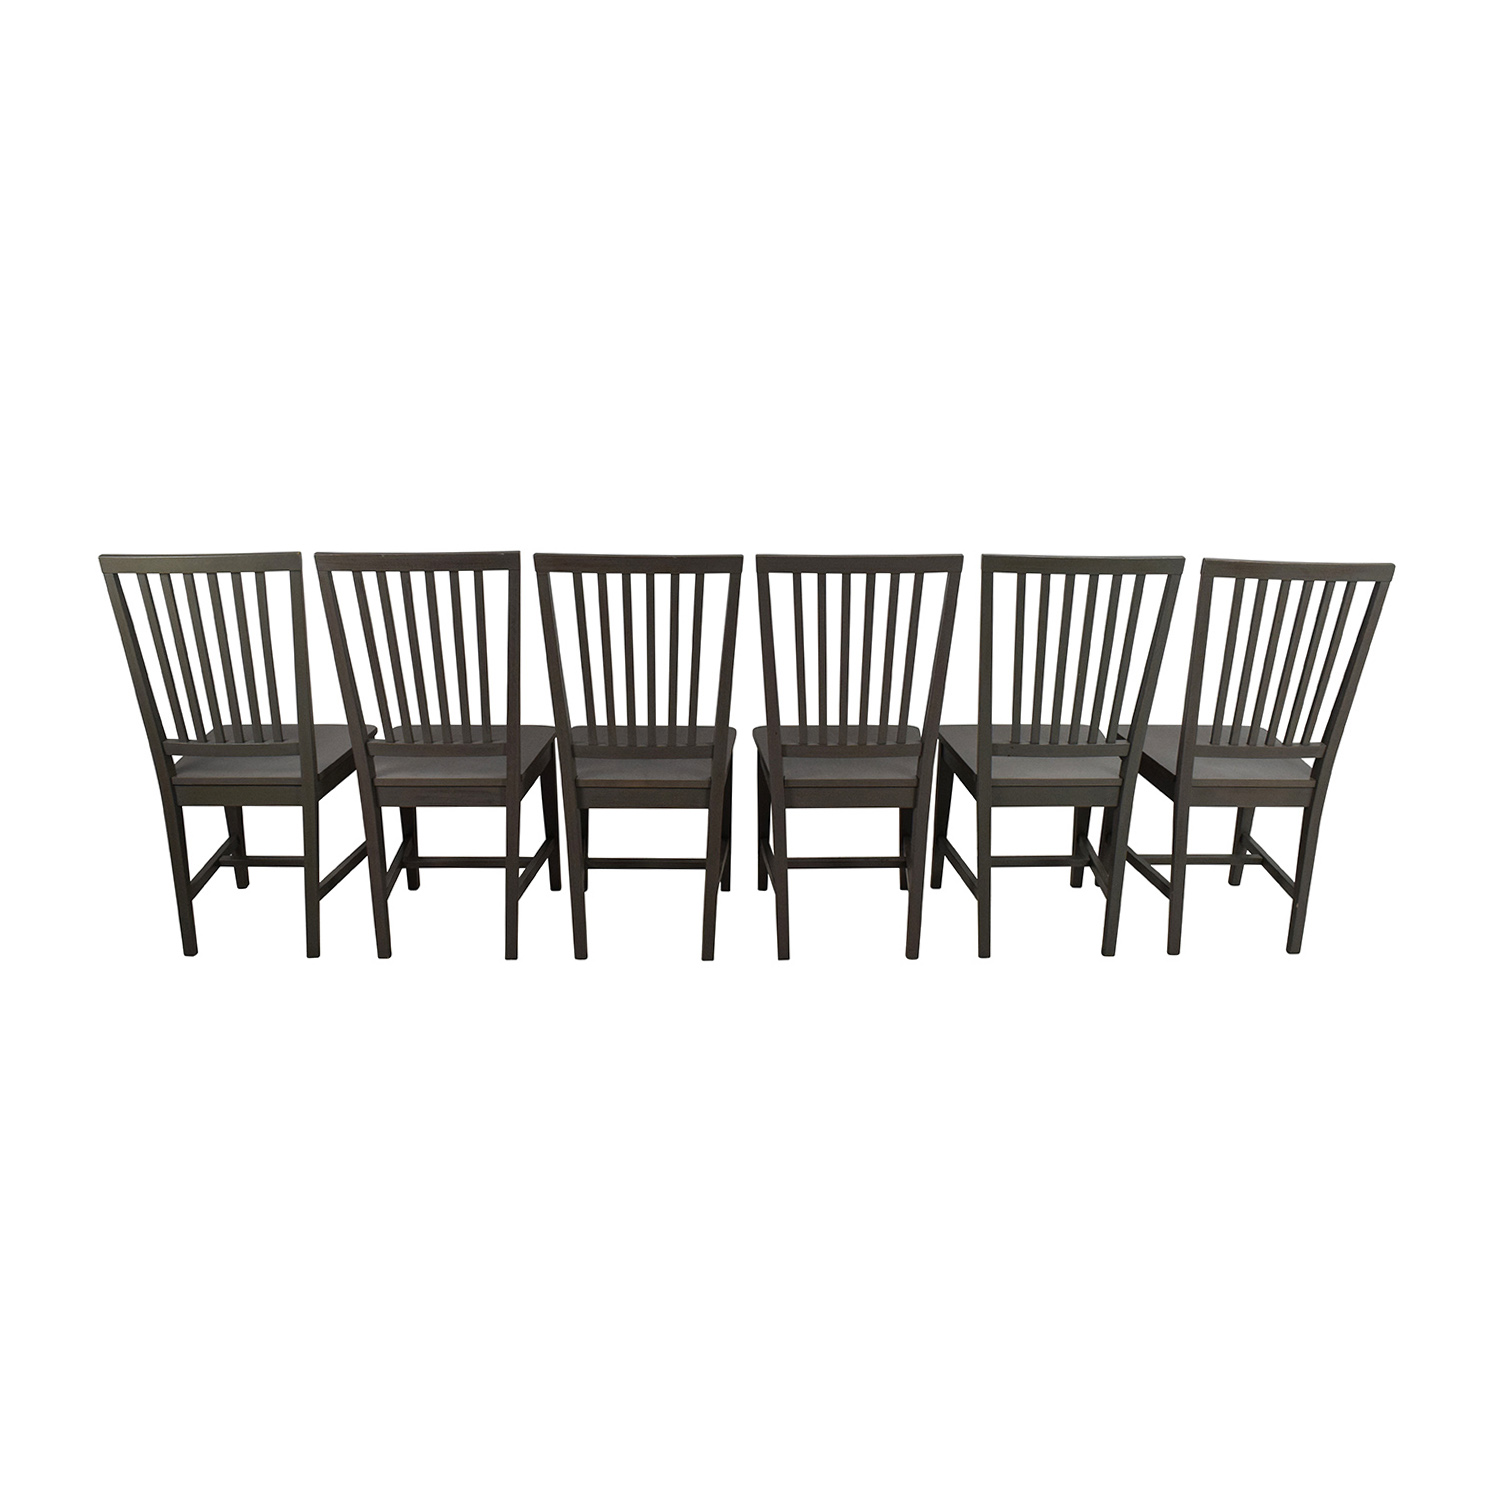 crate and barrel chairs dining lounge beach 75 off village grigio